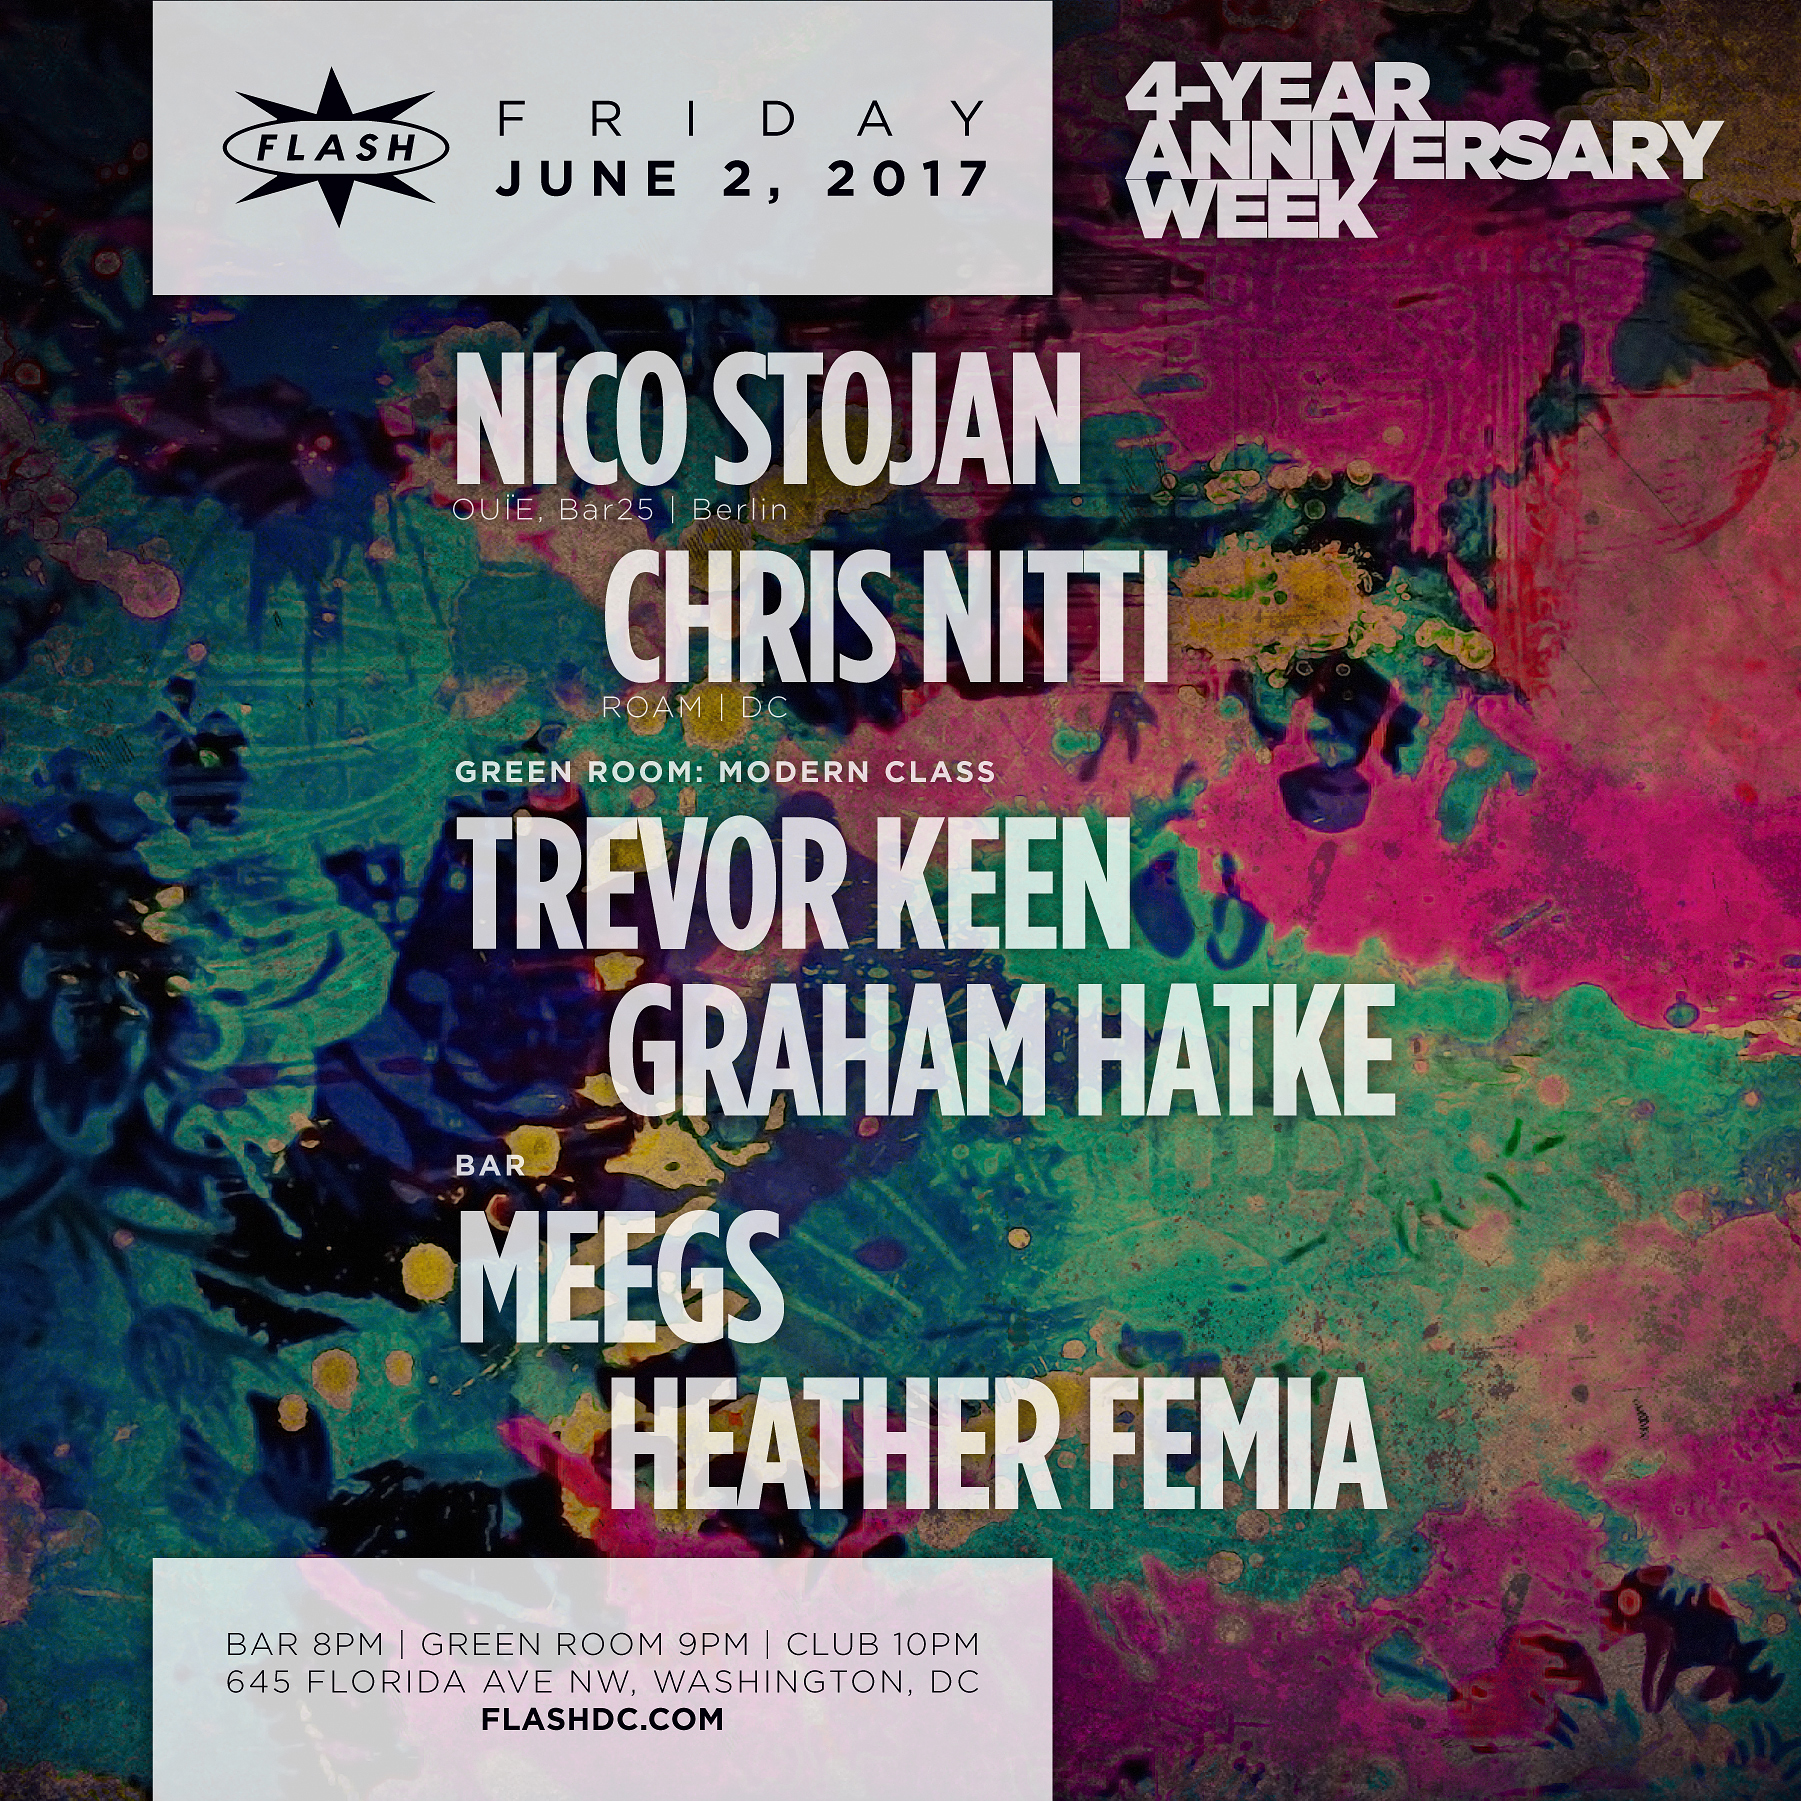 4 Year Anniversary Week: Nico Stojan / Chris Nitti / MOdERN CLASS / Heather Femia / DJ Meegs event thumbnail